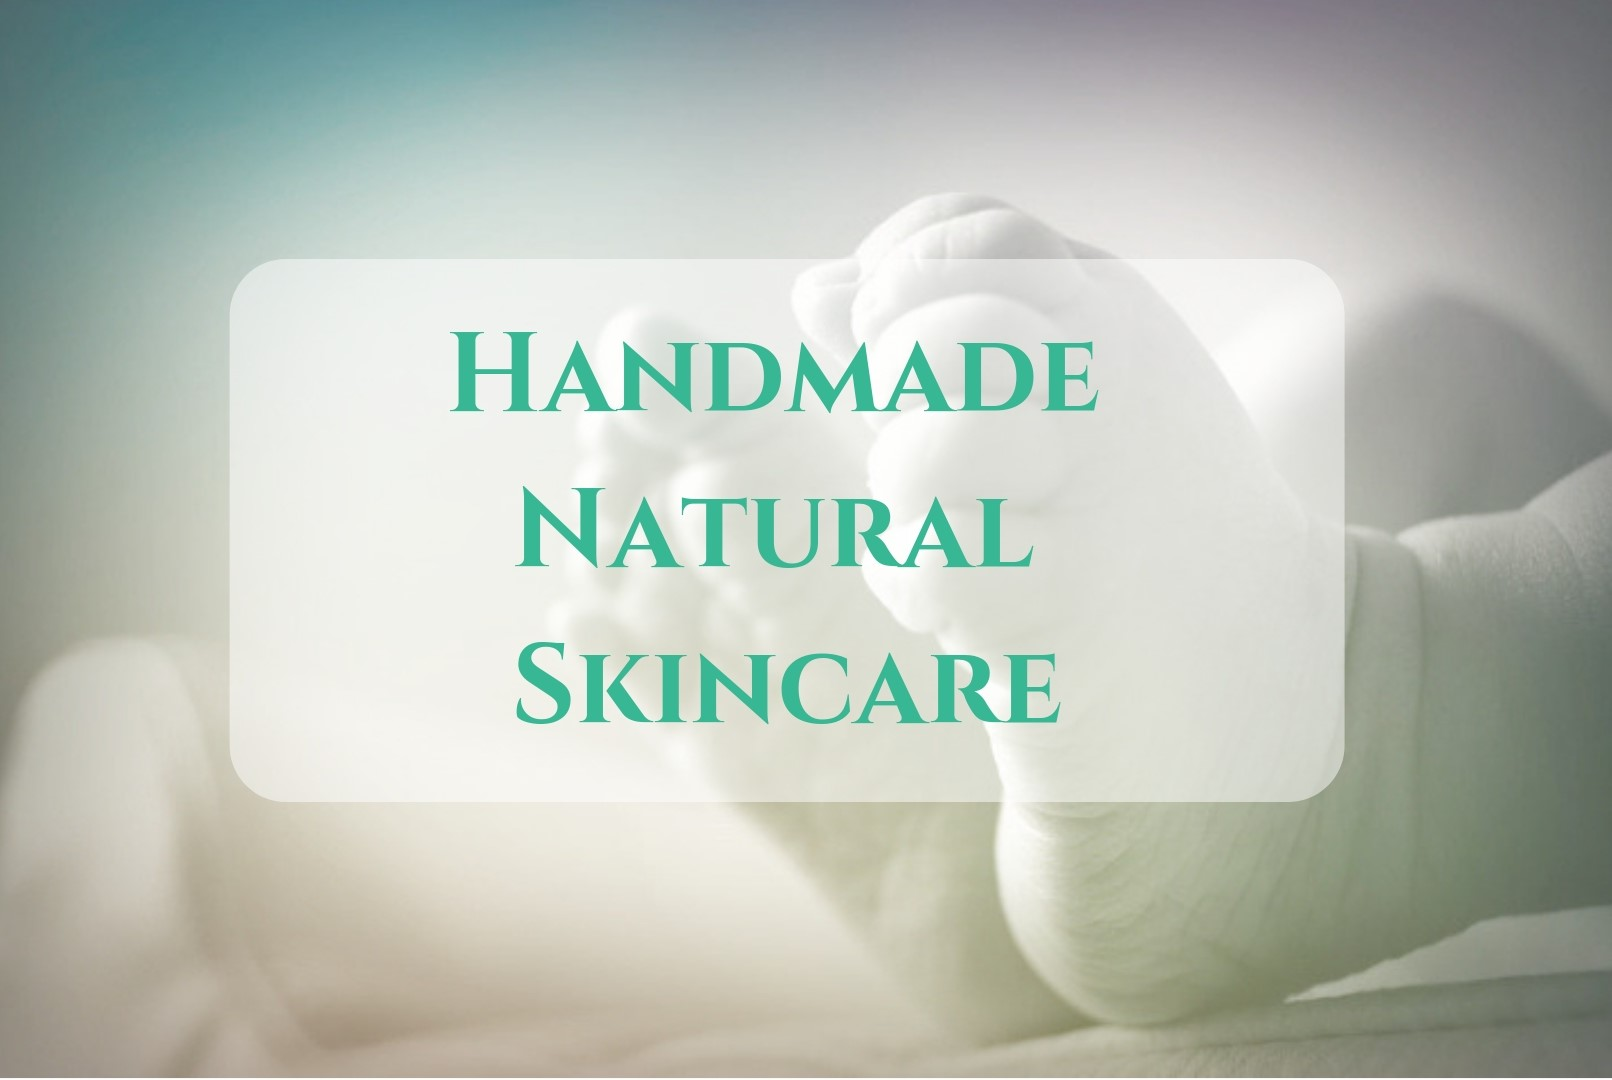 Handmade Natural Skincare includes Face Oil, Eye Cream, Baby Massage Oil available with placenta encapsulations